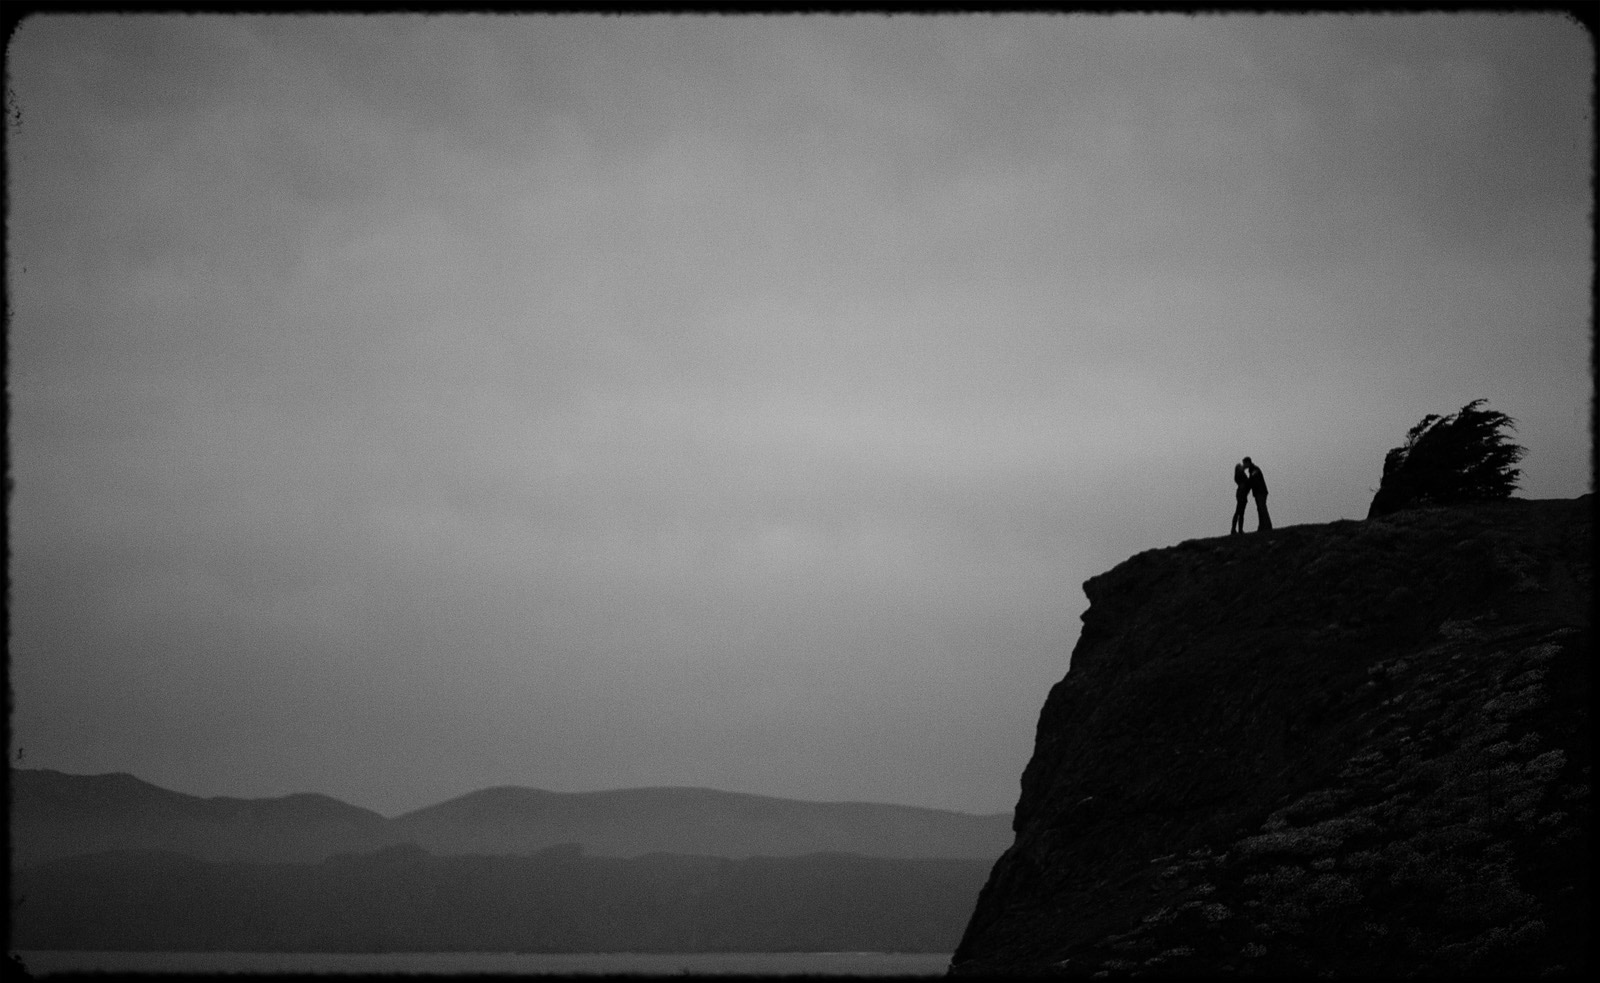 san_francisco_cliff_engagementepic_black_and_white